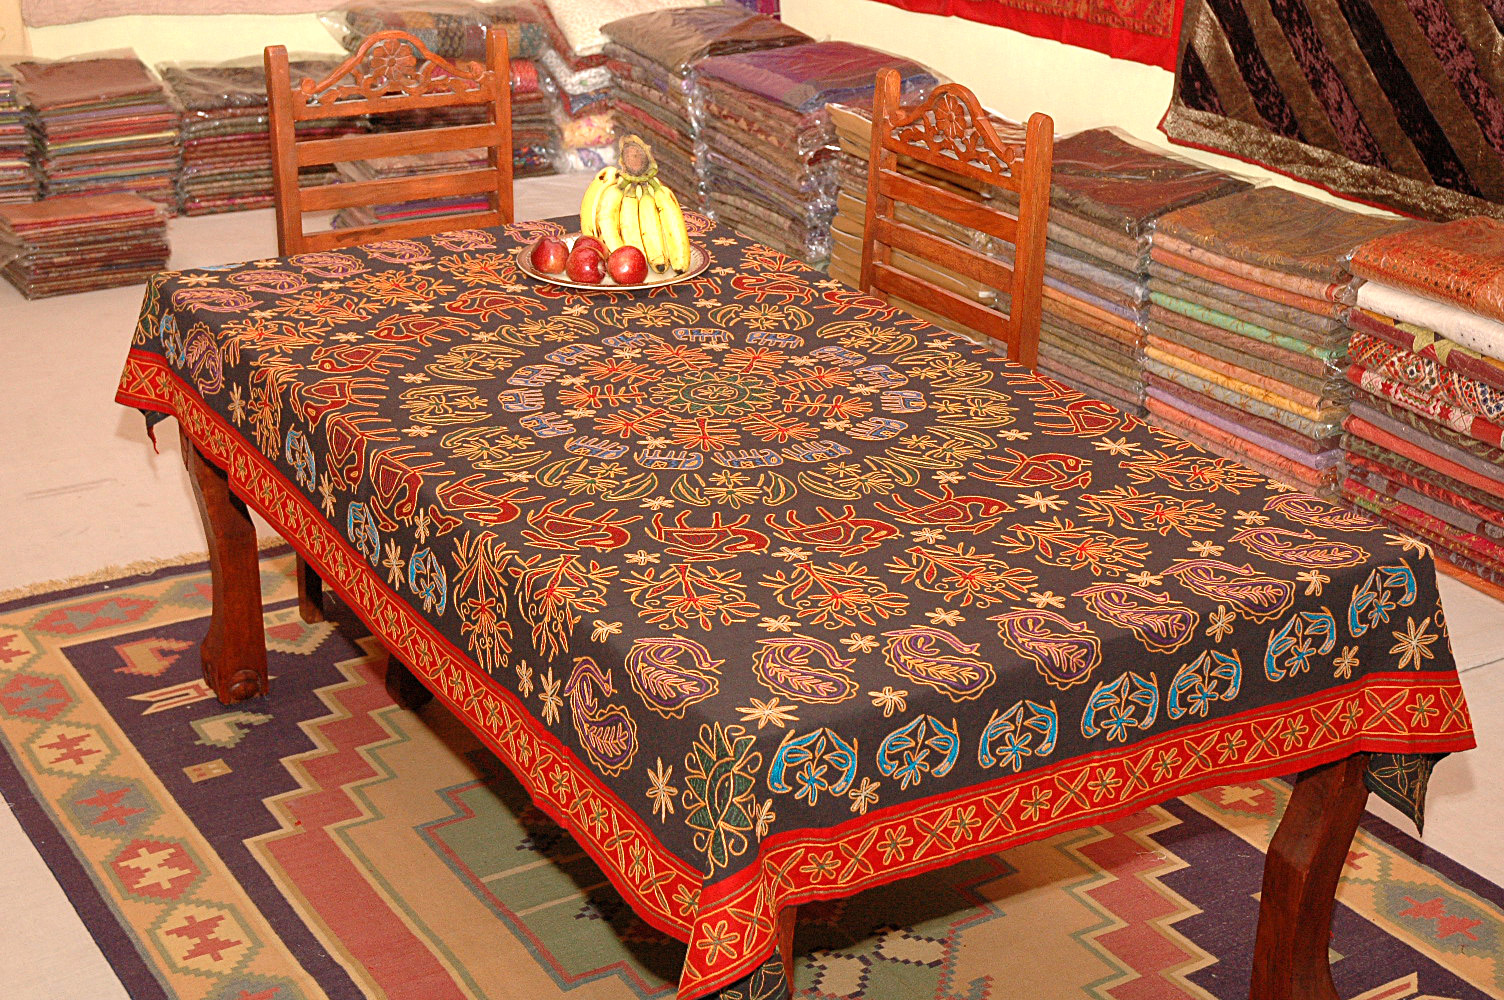 Rajasthan Table Covers Rajasthan Textiles & Table Covers \u2013 Rajasthan Handicrafts